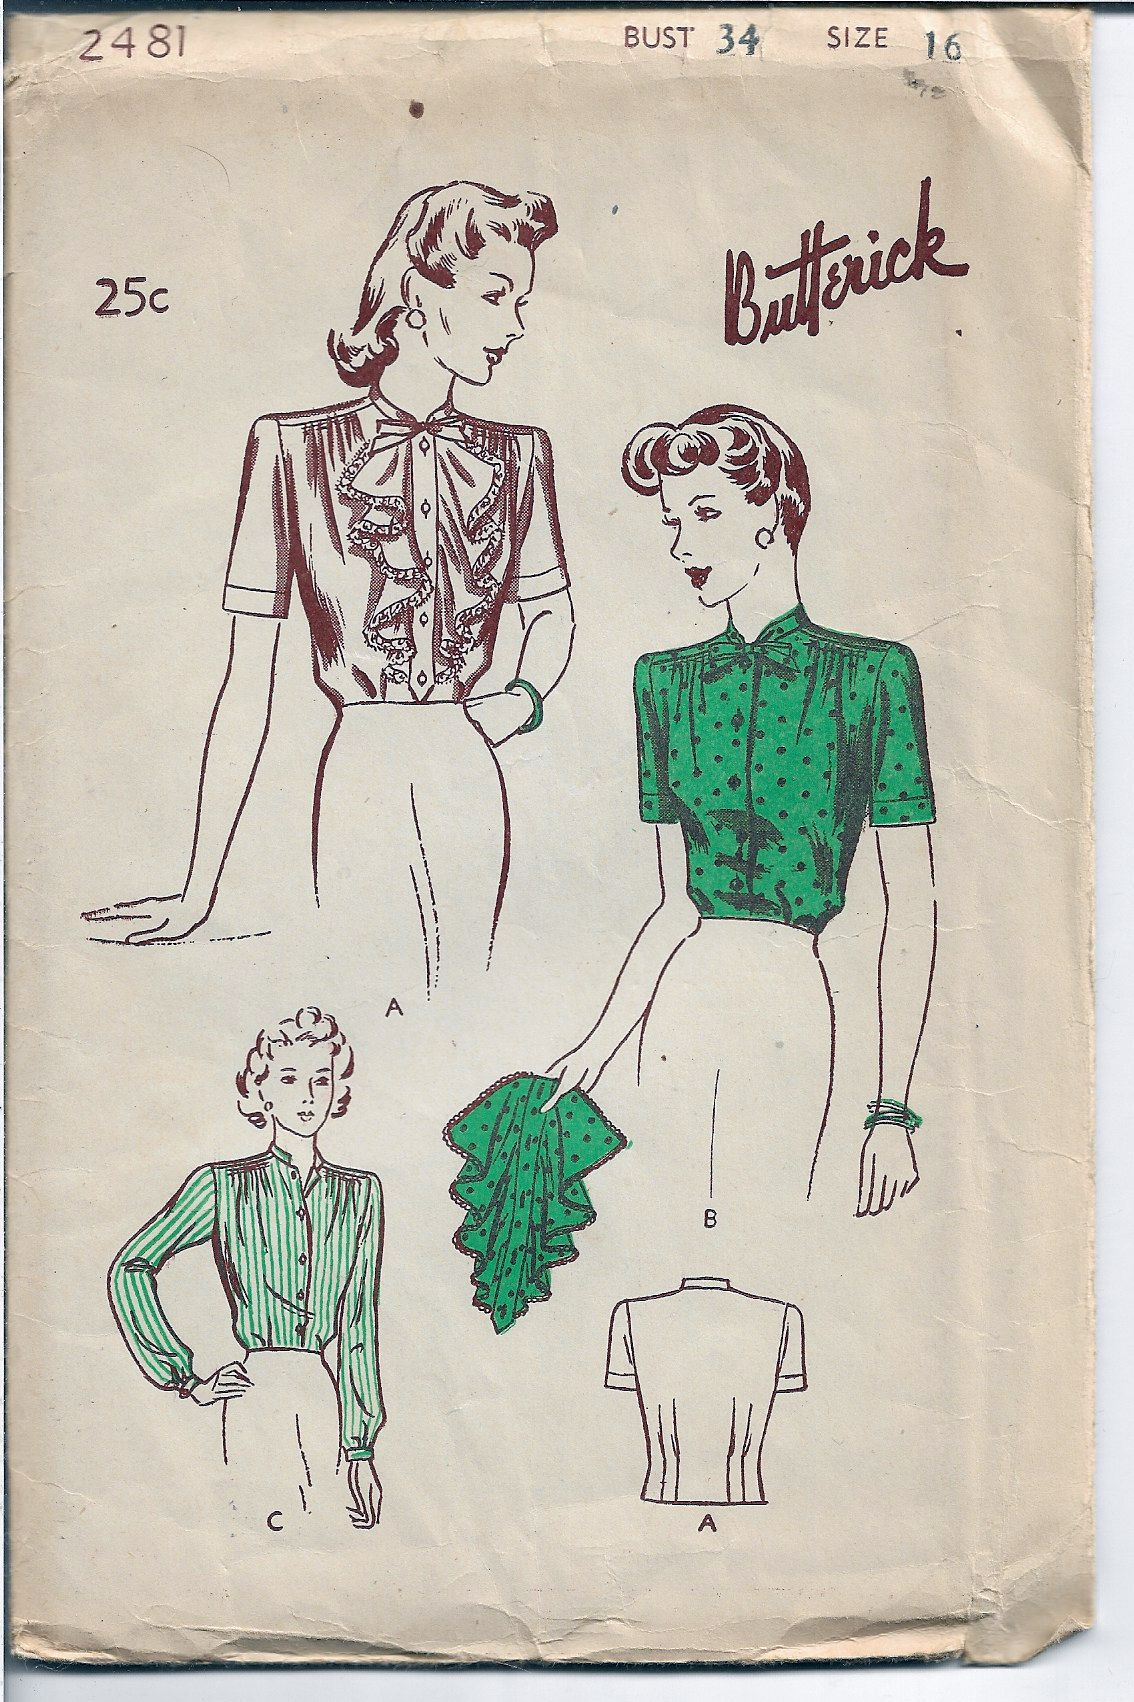 Butterick 2481 Ladies Frilly Jabot Blouse Vintage Sewing Pattern 1940s - VintageStitching - Vintage Sewing Patterns